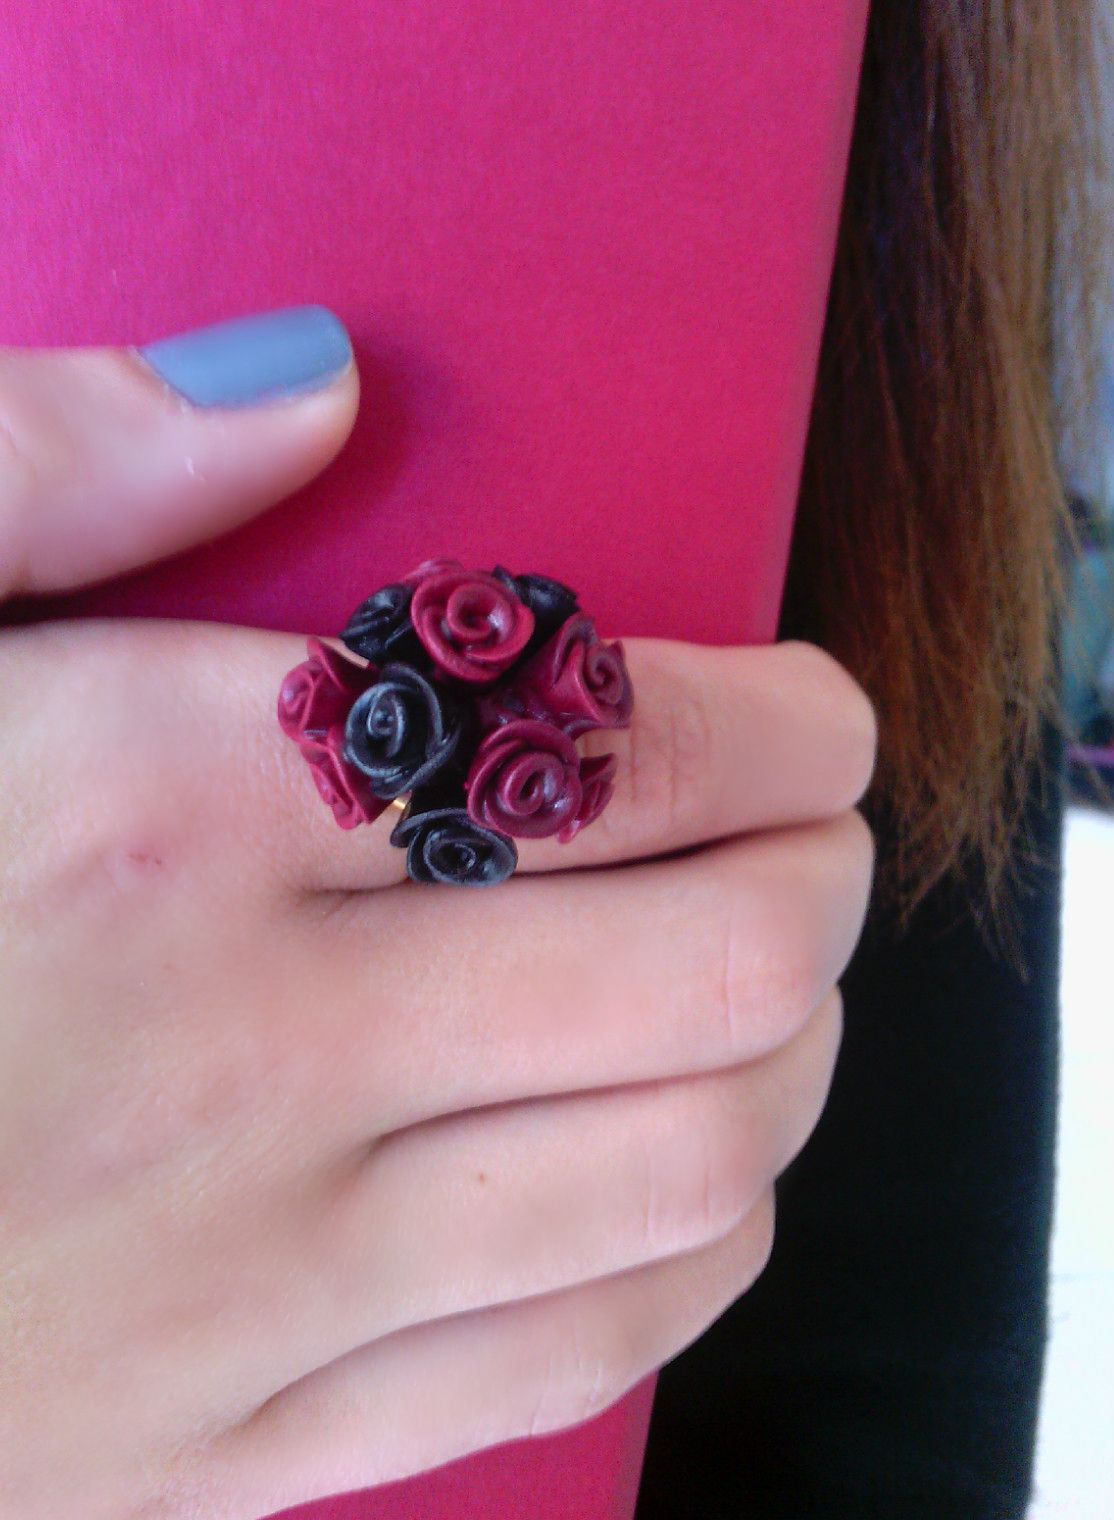 jewellery, jewelry, handmade rings, colours, rings, nails, rose, polymeric clay, fashion, style, fimo, roses, black, red, liz art on facebook